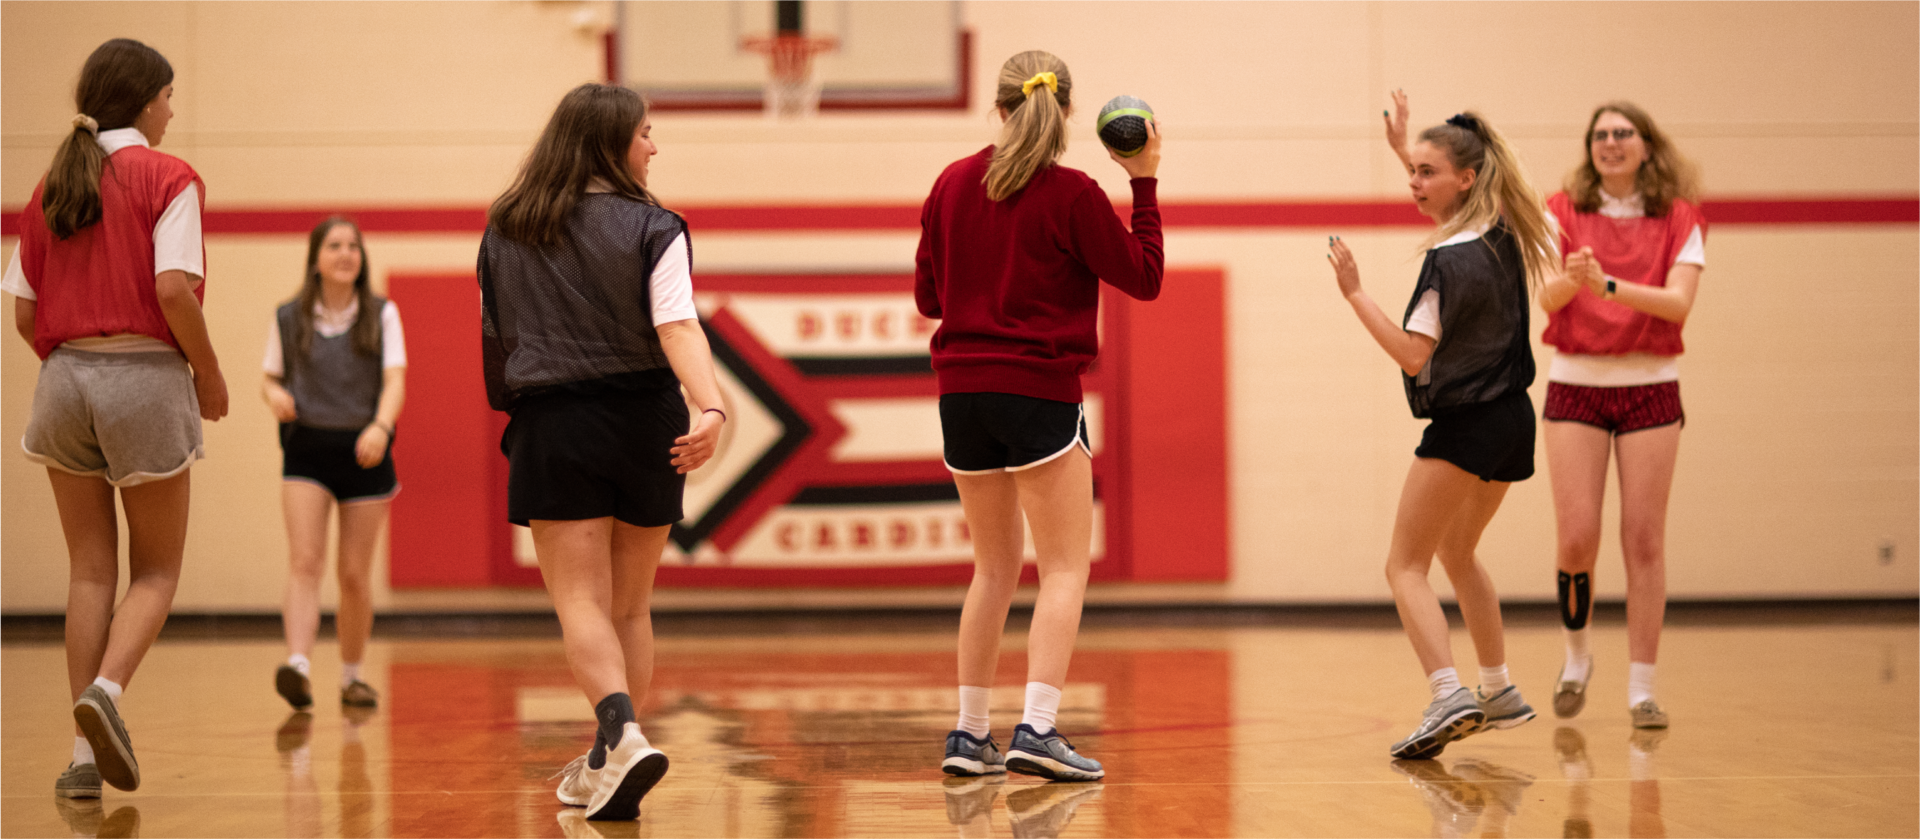 Students playing a game during PE